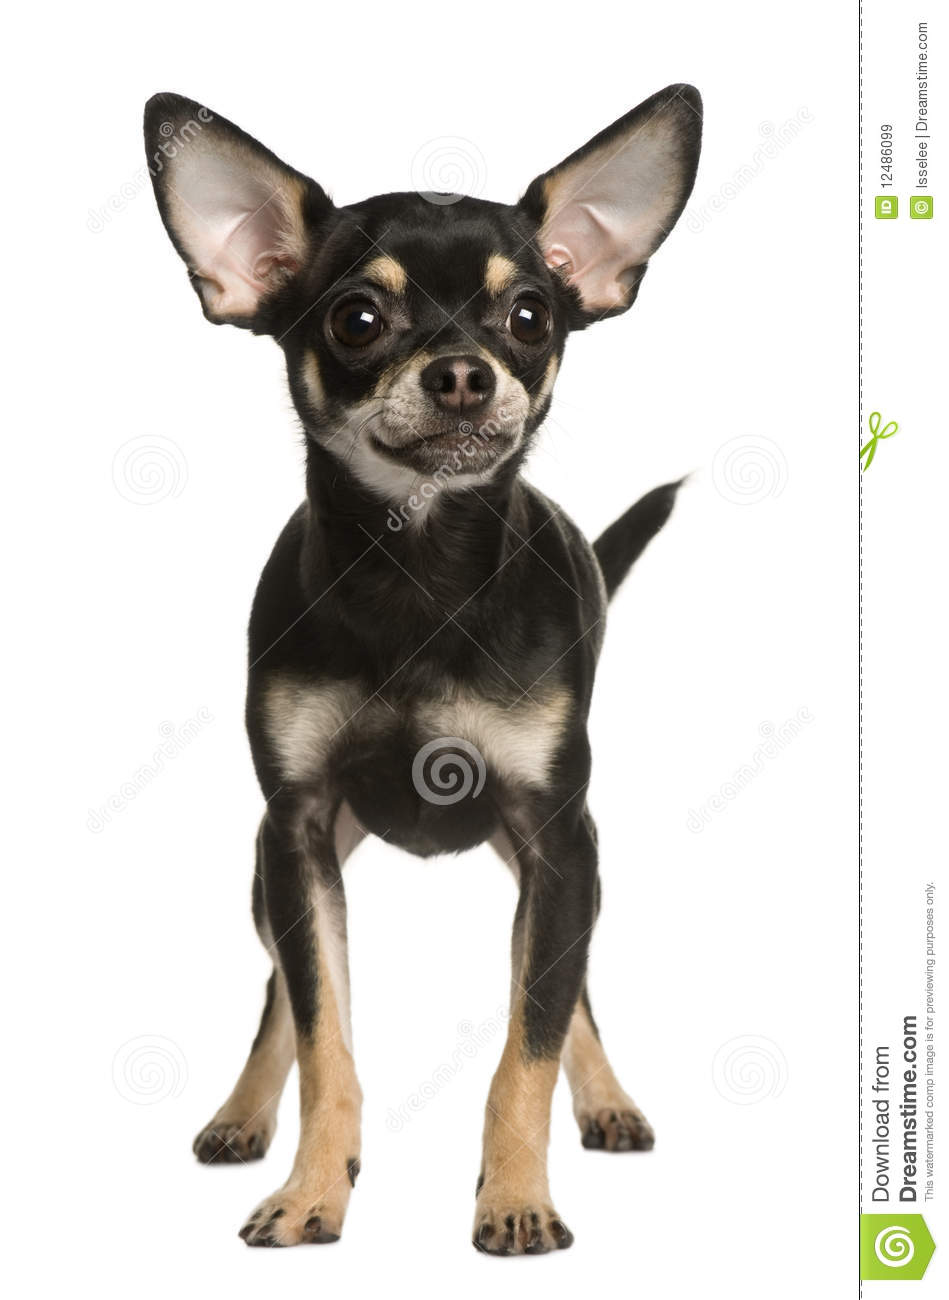 front view of chihuahua dog standing royalty free stock